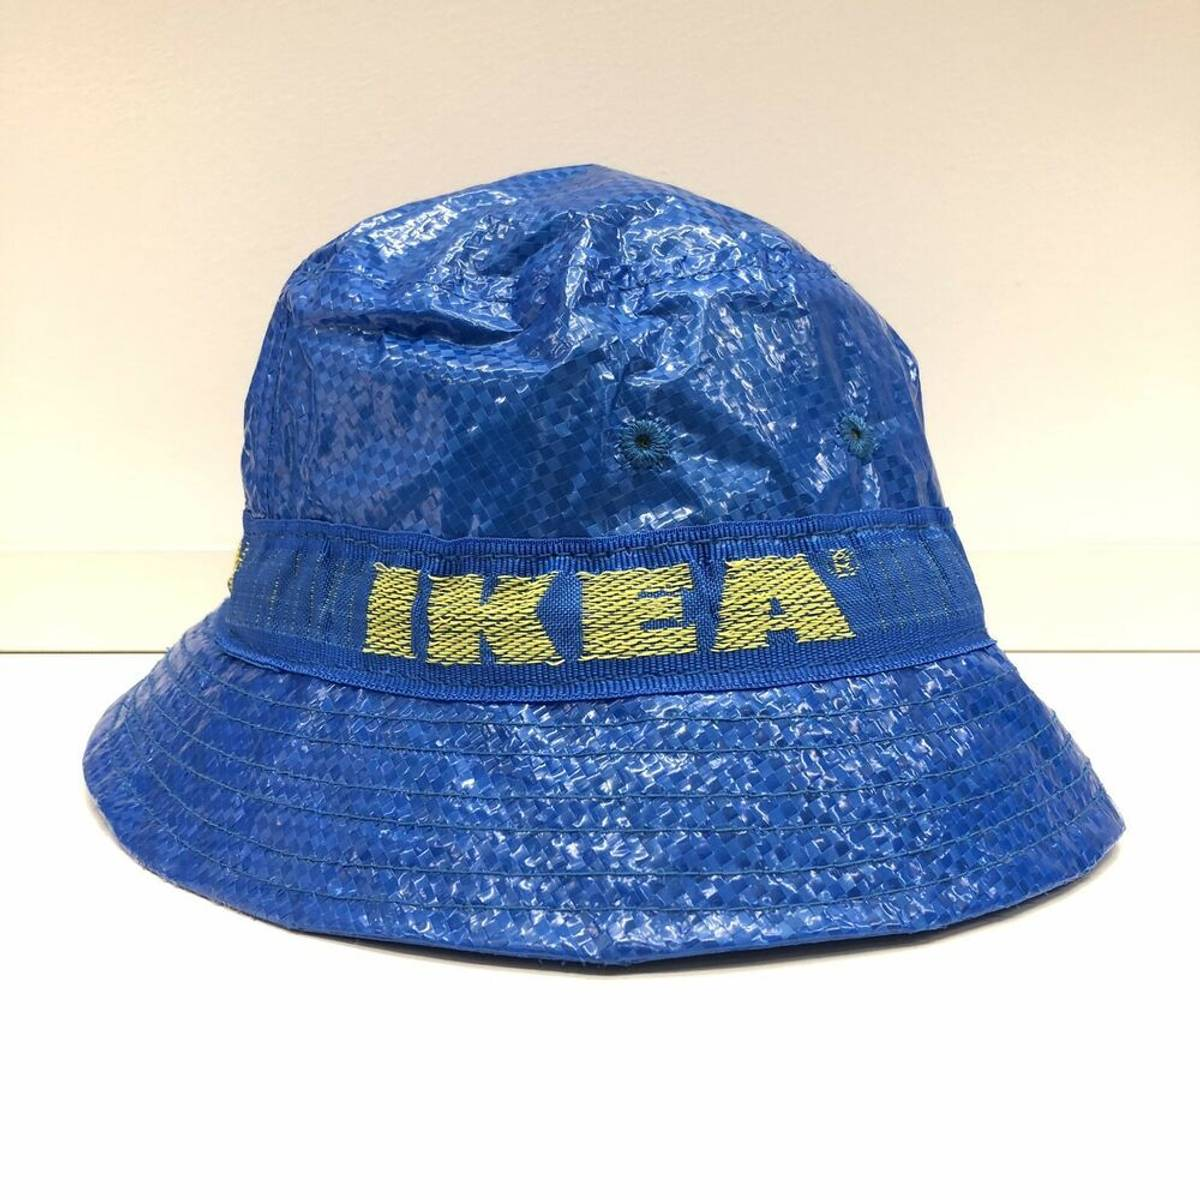 Ikea Ikea Bucket Hat Rare Sold Out Limited Nicole Mclaughlin Grailed